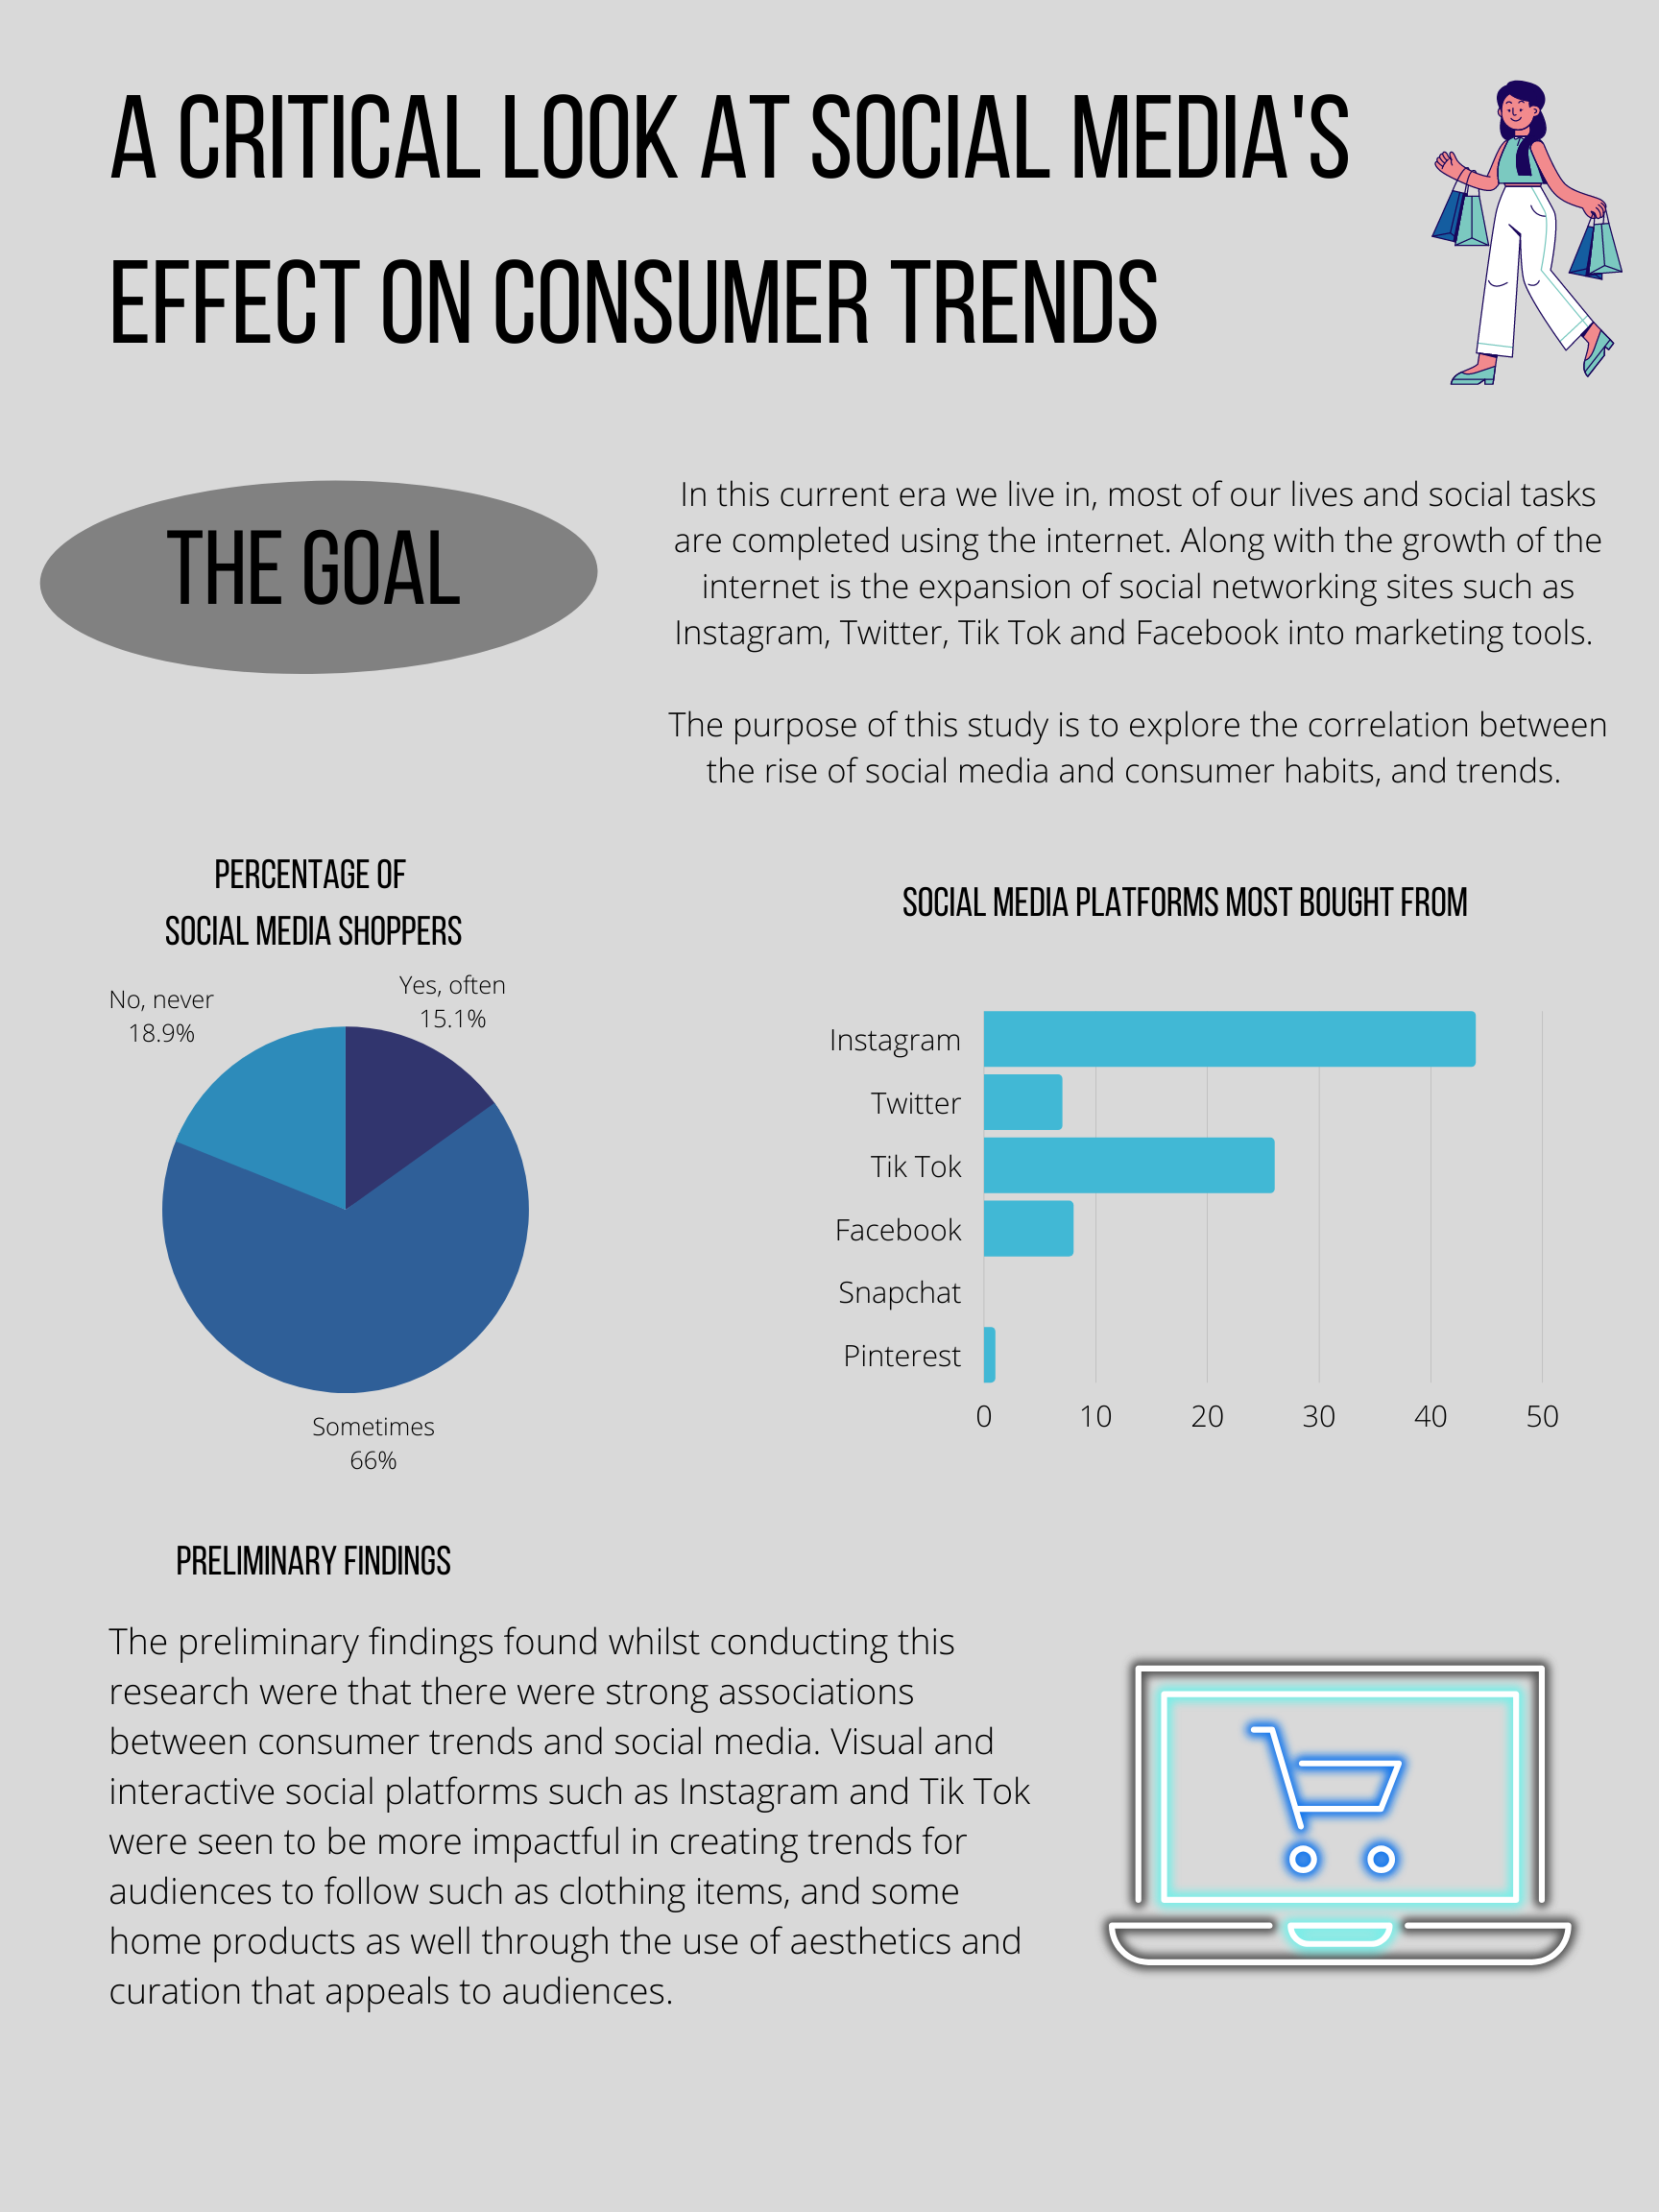 A Critical Look at Social Media's Effect on Consumer Trends